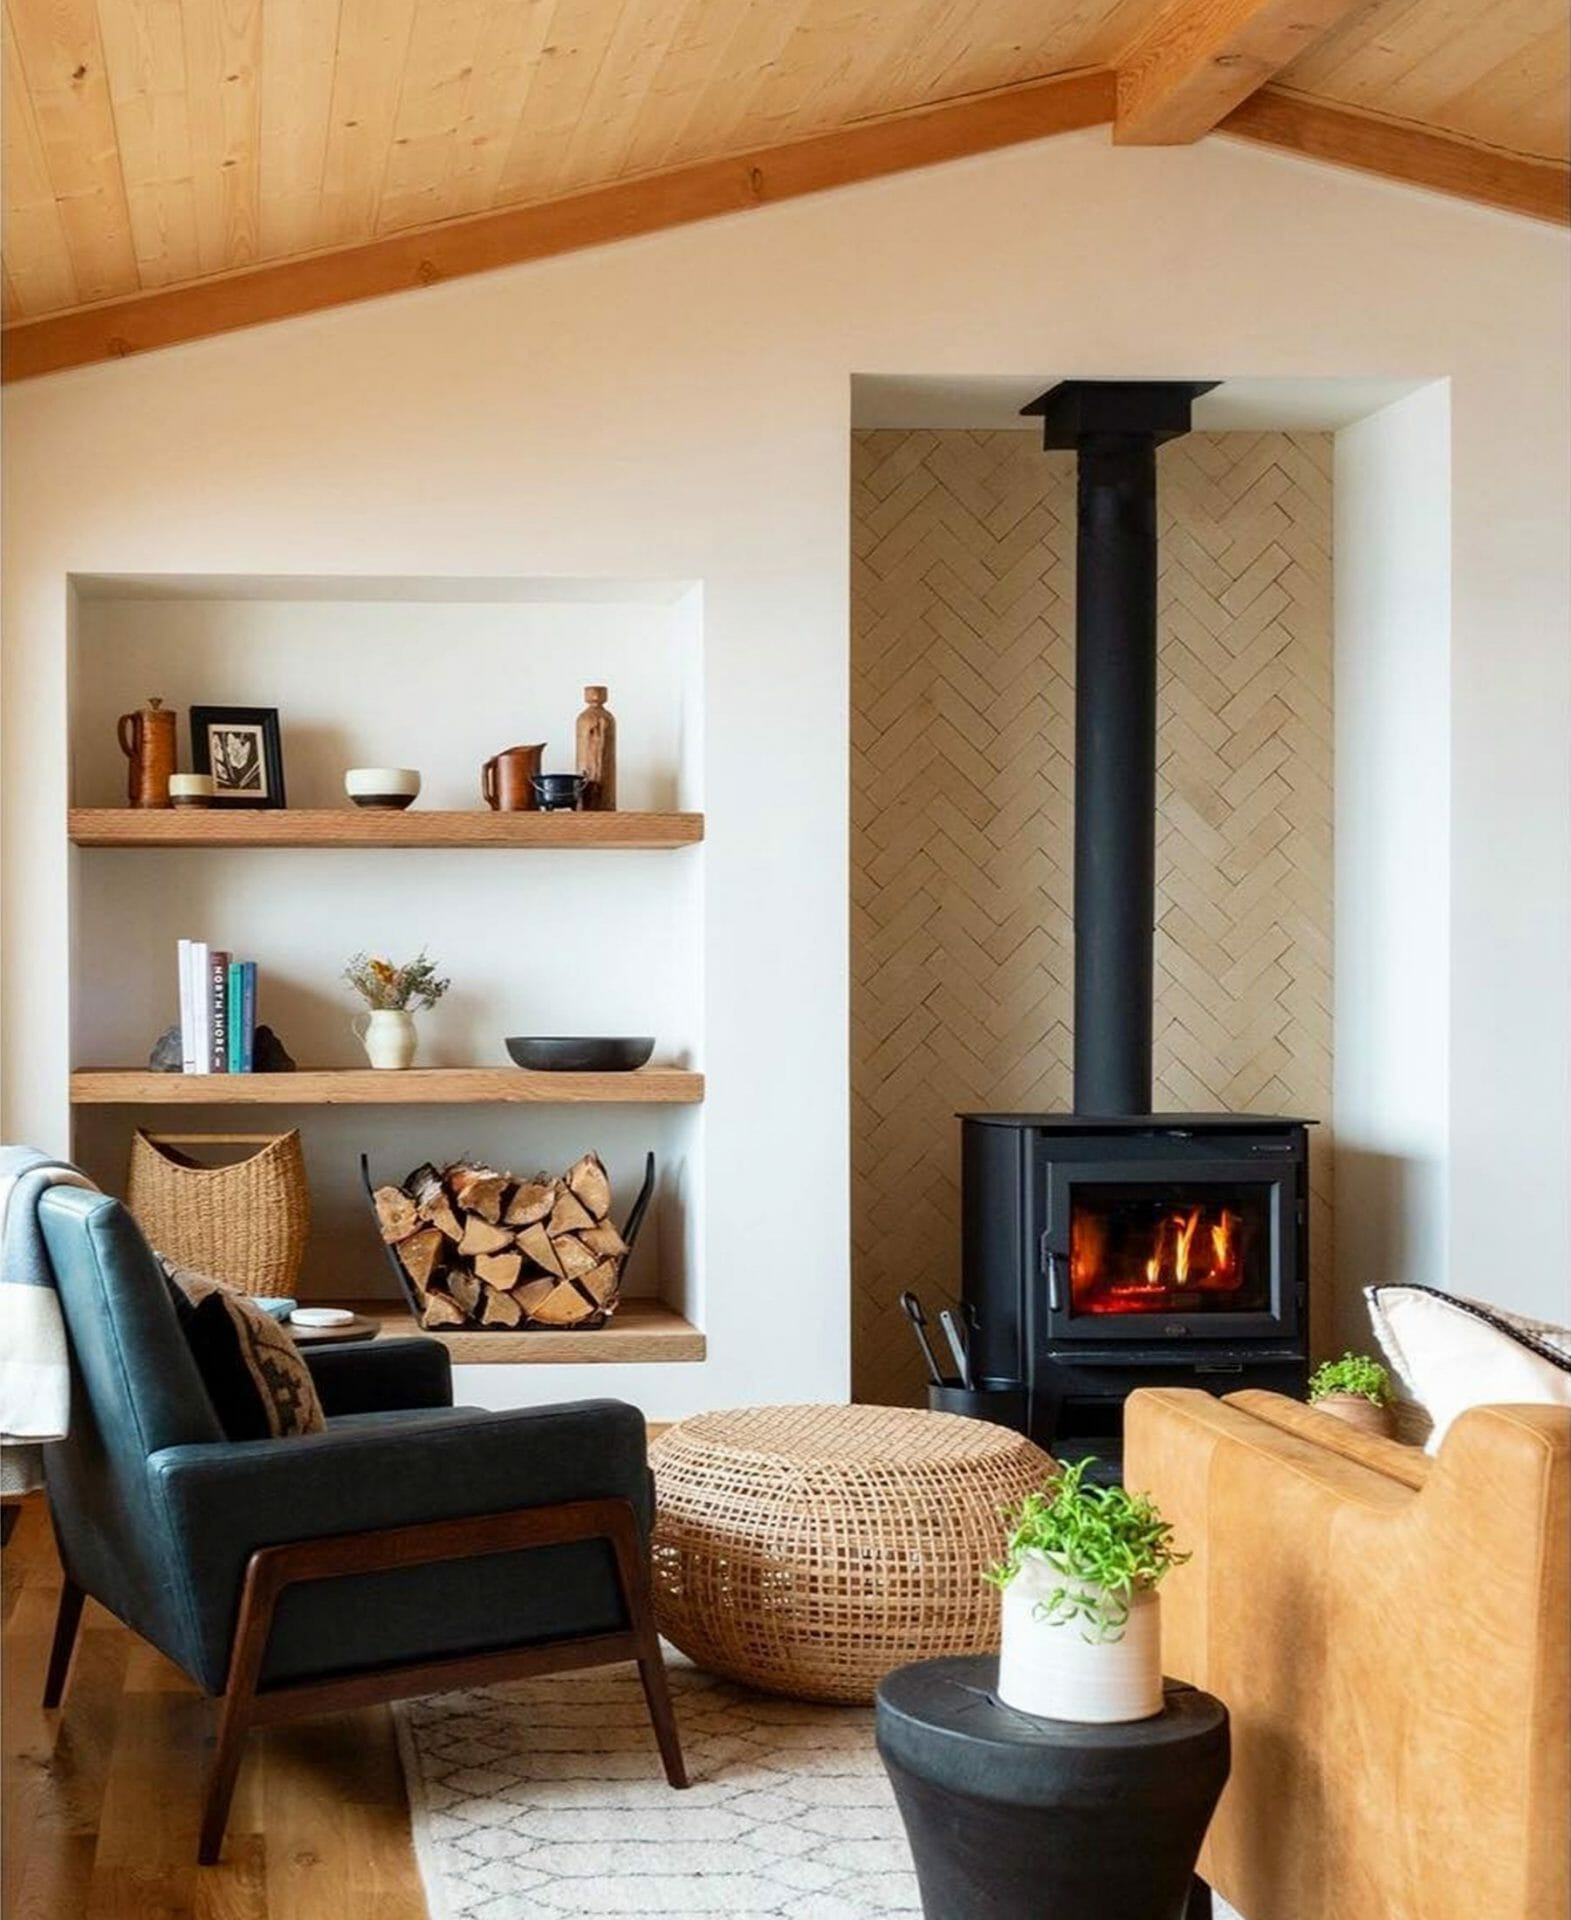 Two armchairs are turned towards a black fireplace in a cozy living room.